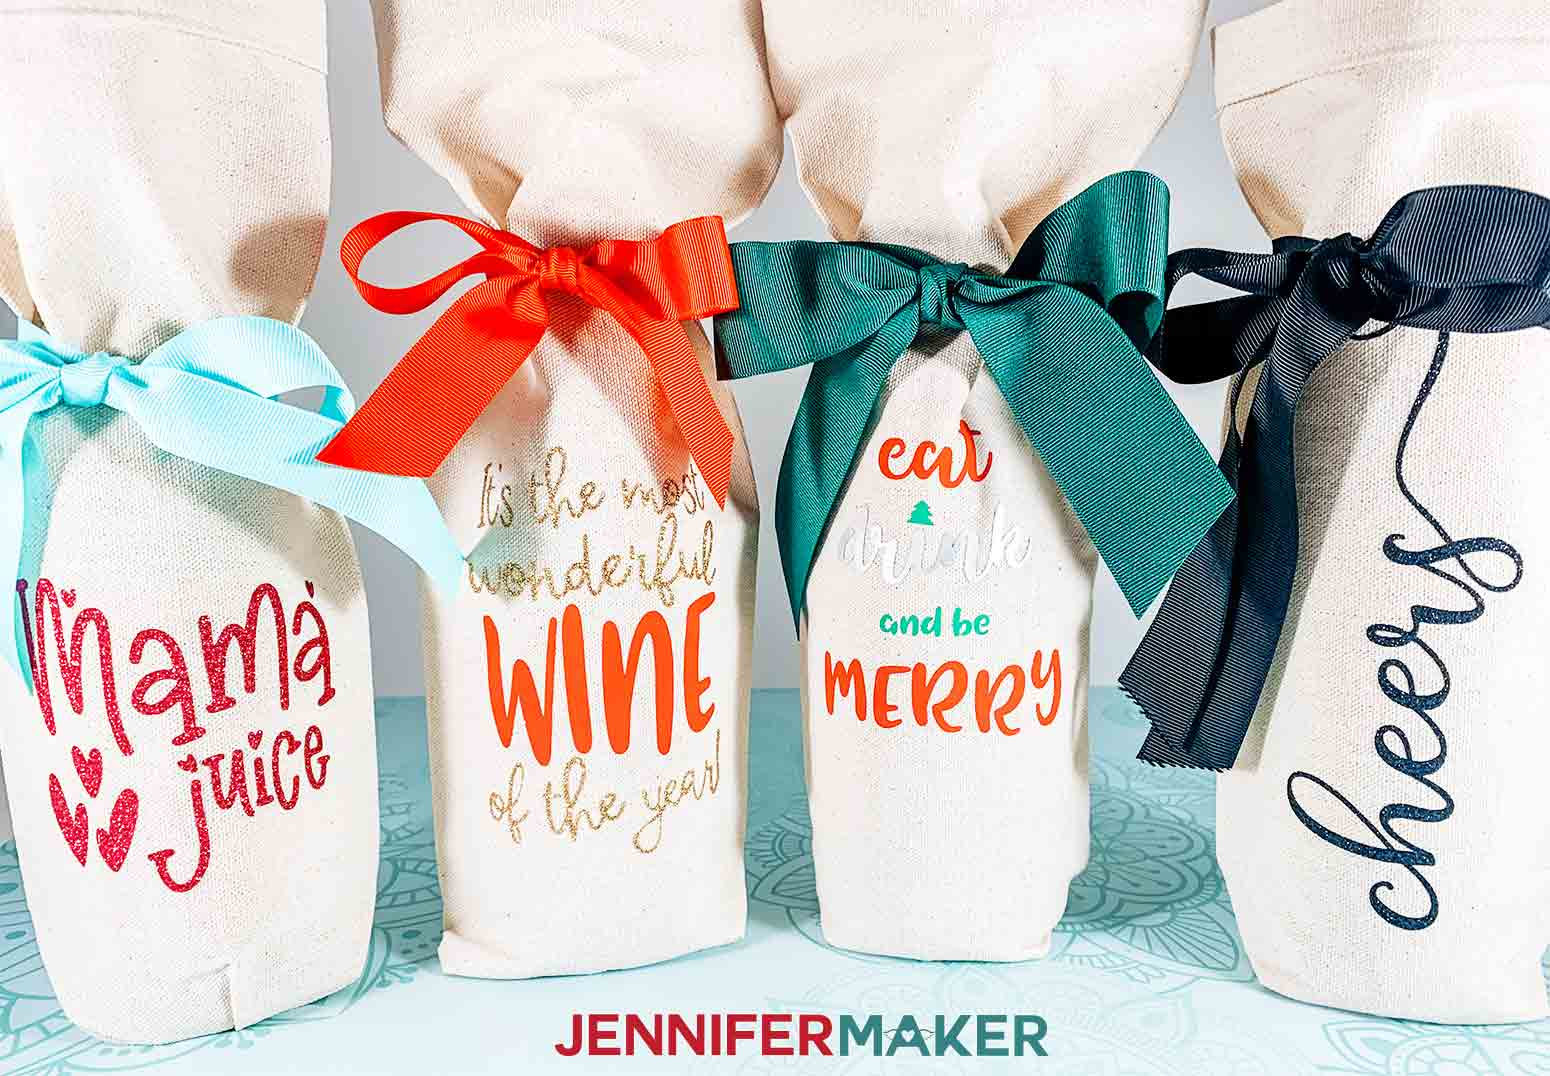 Festive-Holiday-Wine-Totes-JenniferMaker-Cover-Shot